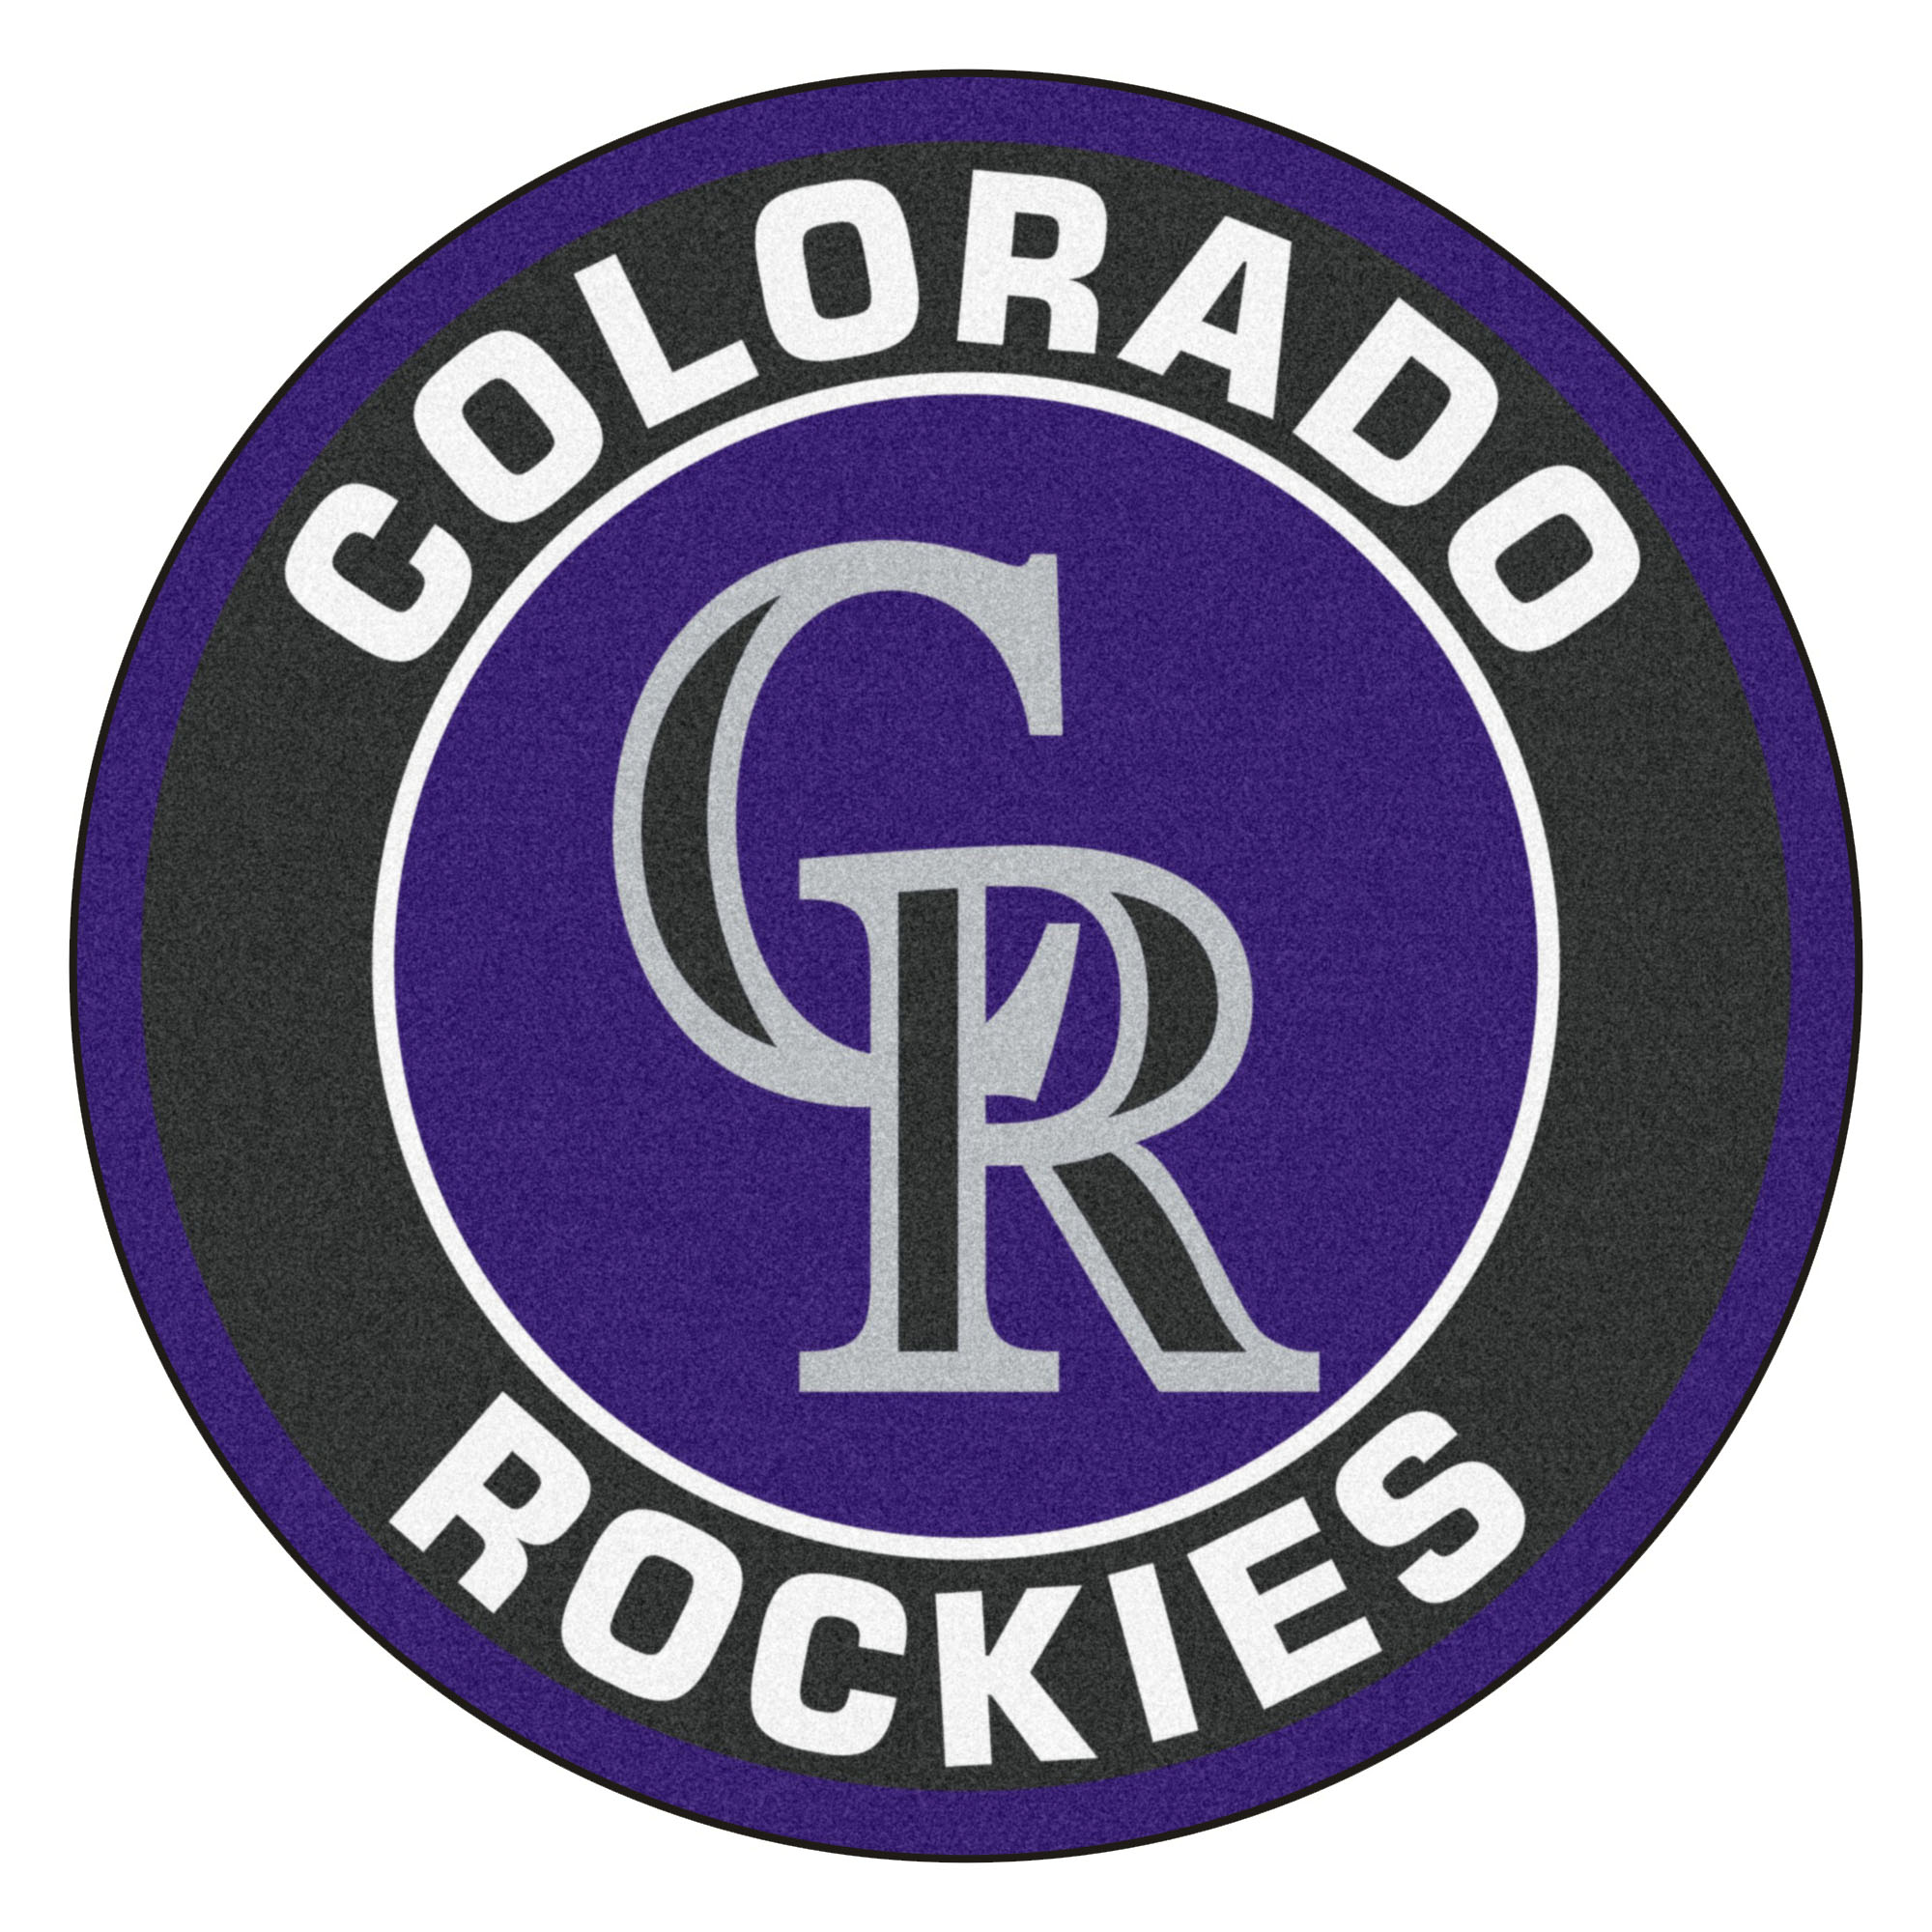 presale codes for mlb opening day 2018 colorado rockies presale